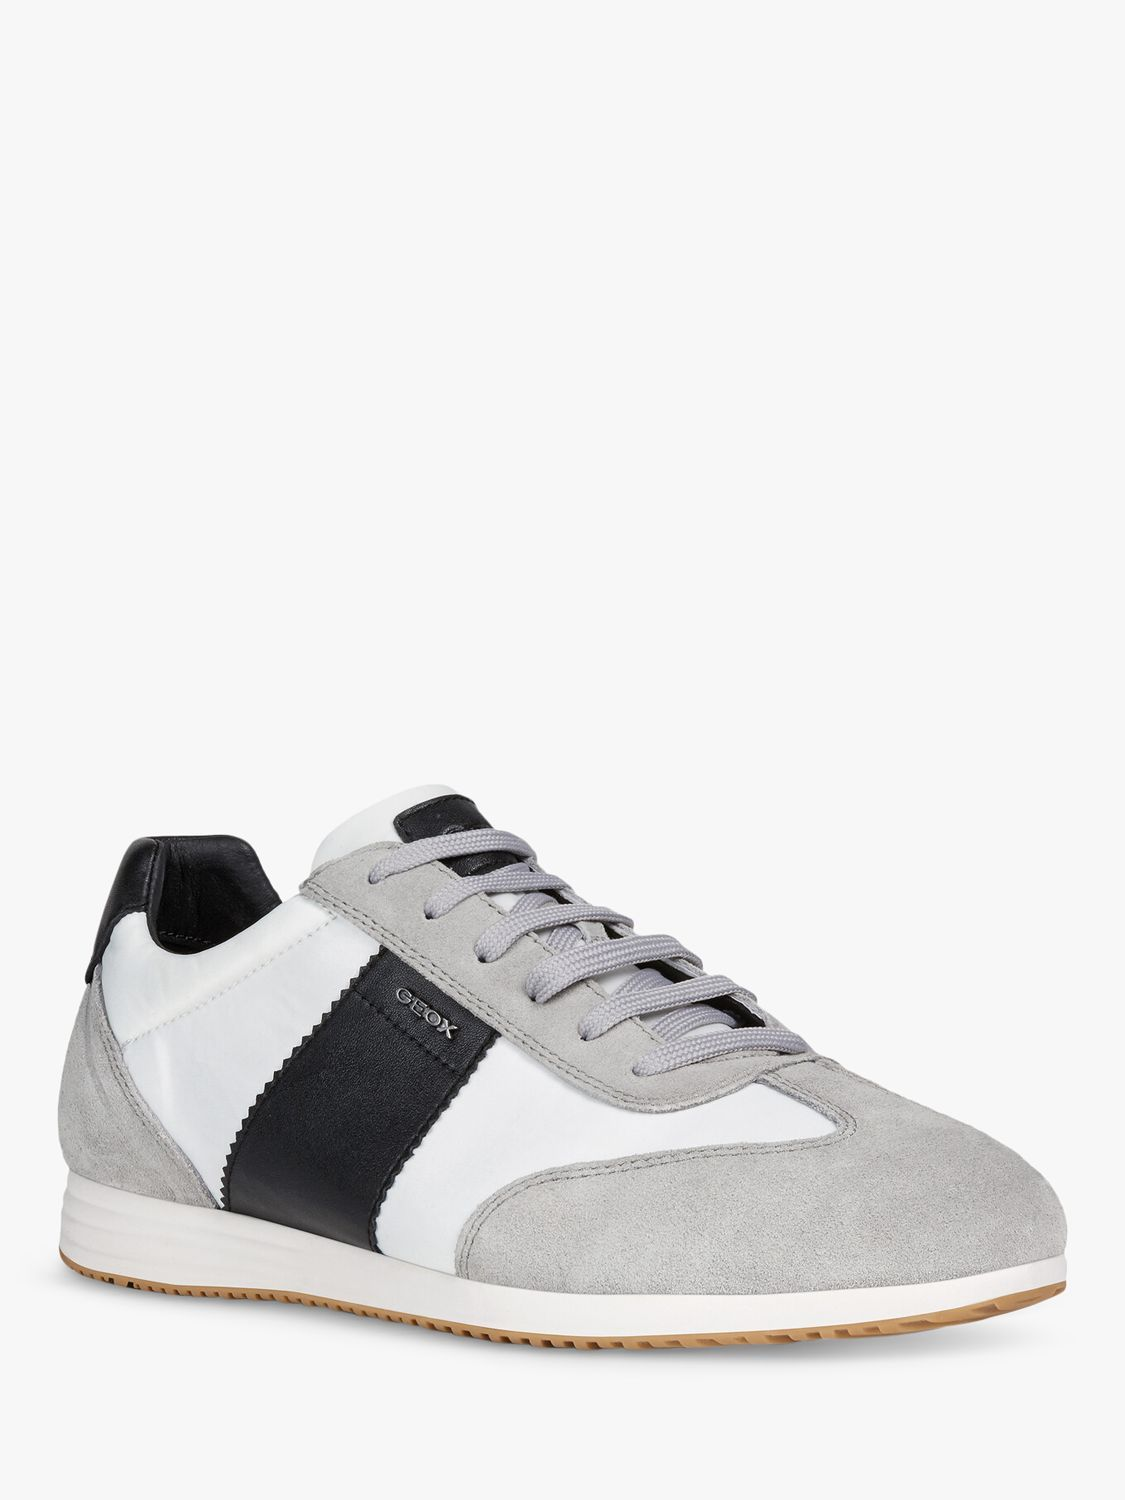 Geox Arsien Suede Trainers, Navy in 2020 | Suede trainers